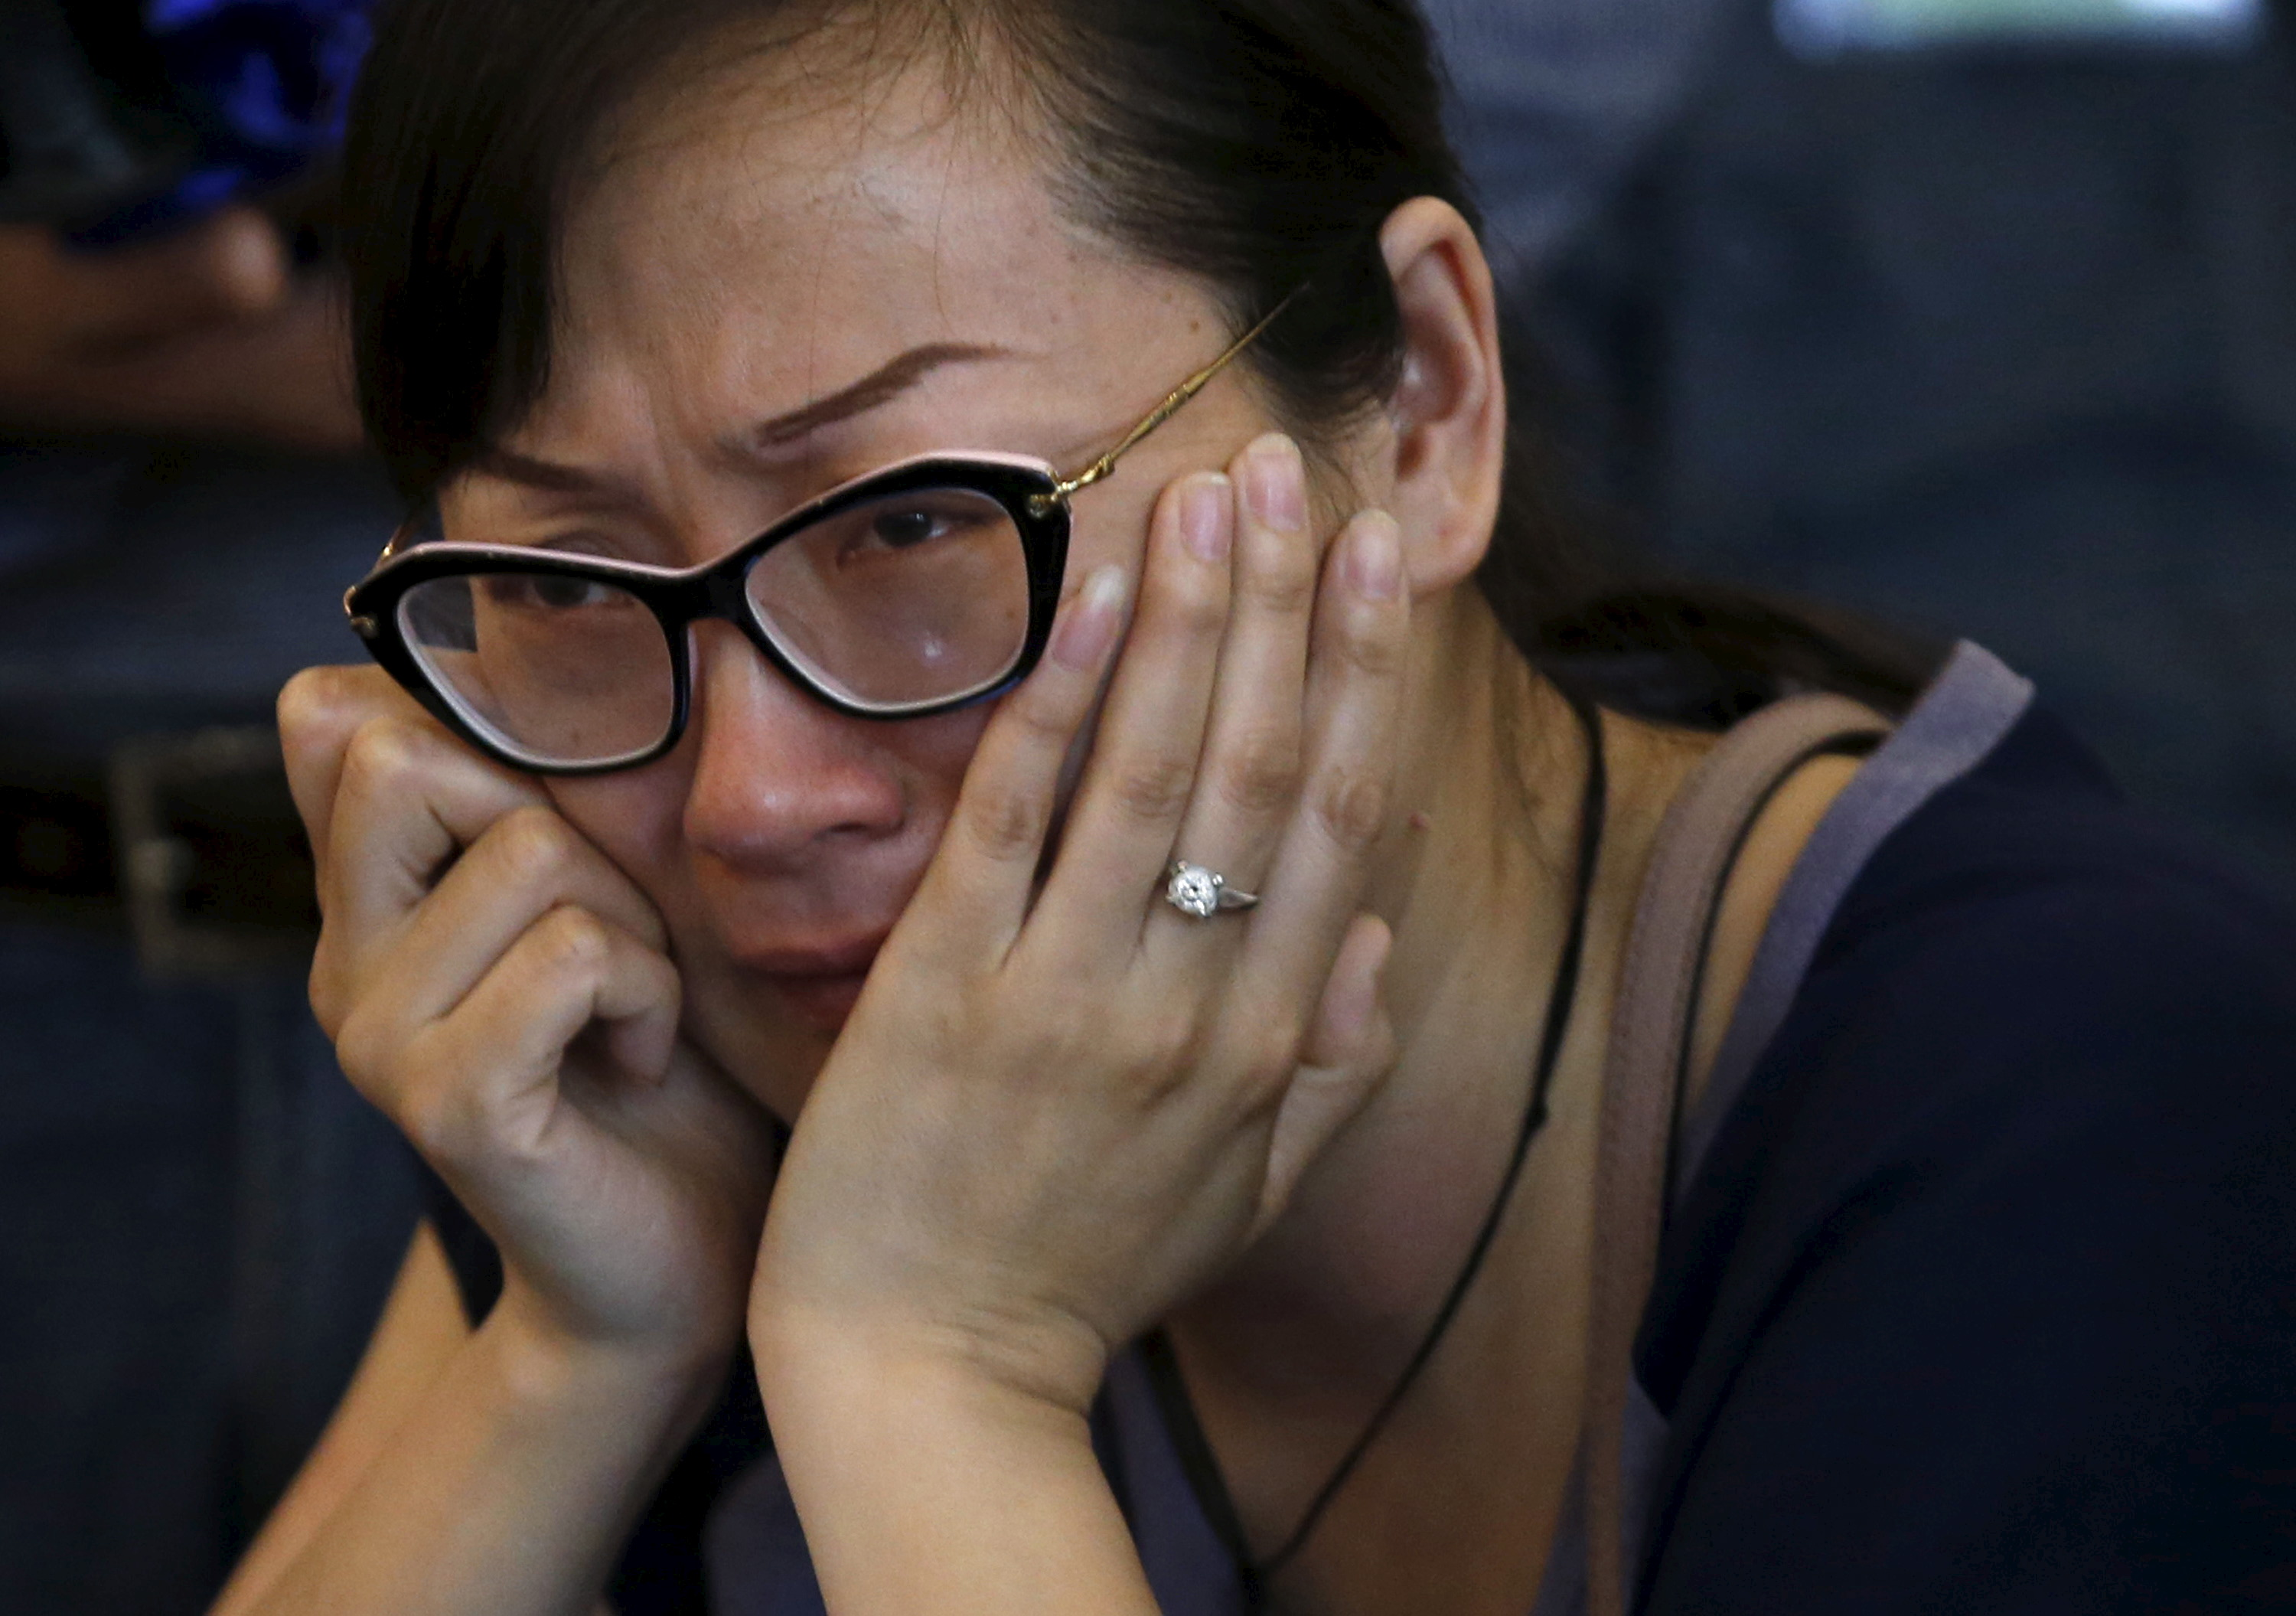 A family member of a passenger aboard the capsized ship Eastern Star cries during the government's daily briefing in Jianli, Hubei province, China, June 6, 2015. Kim Kyung-Hoon/Reuters